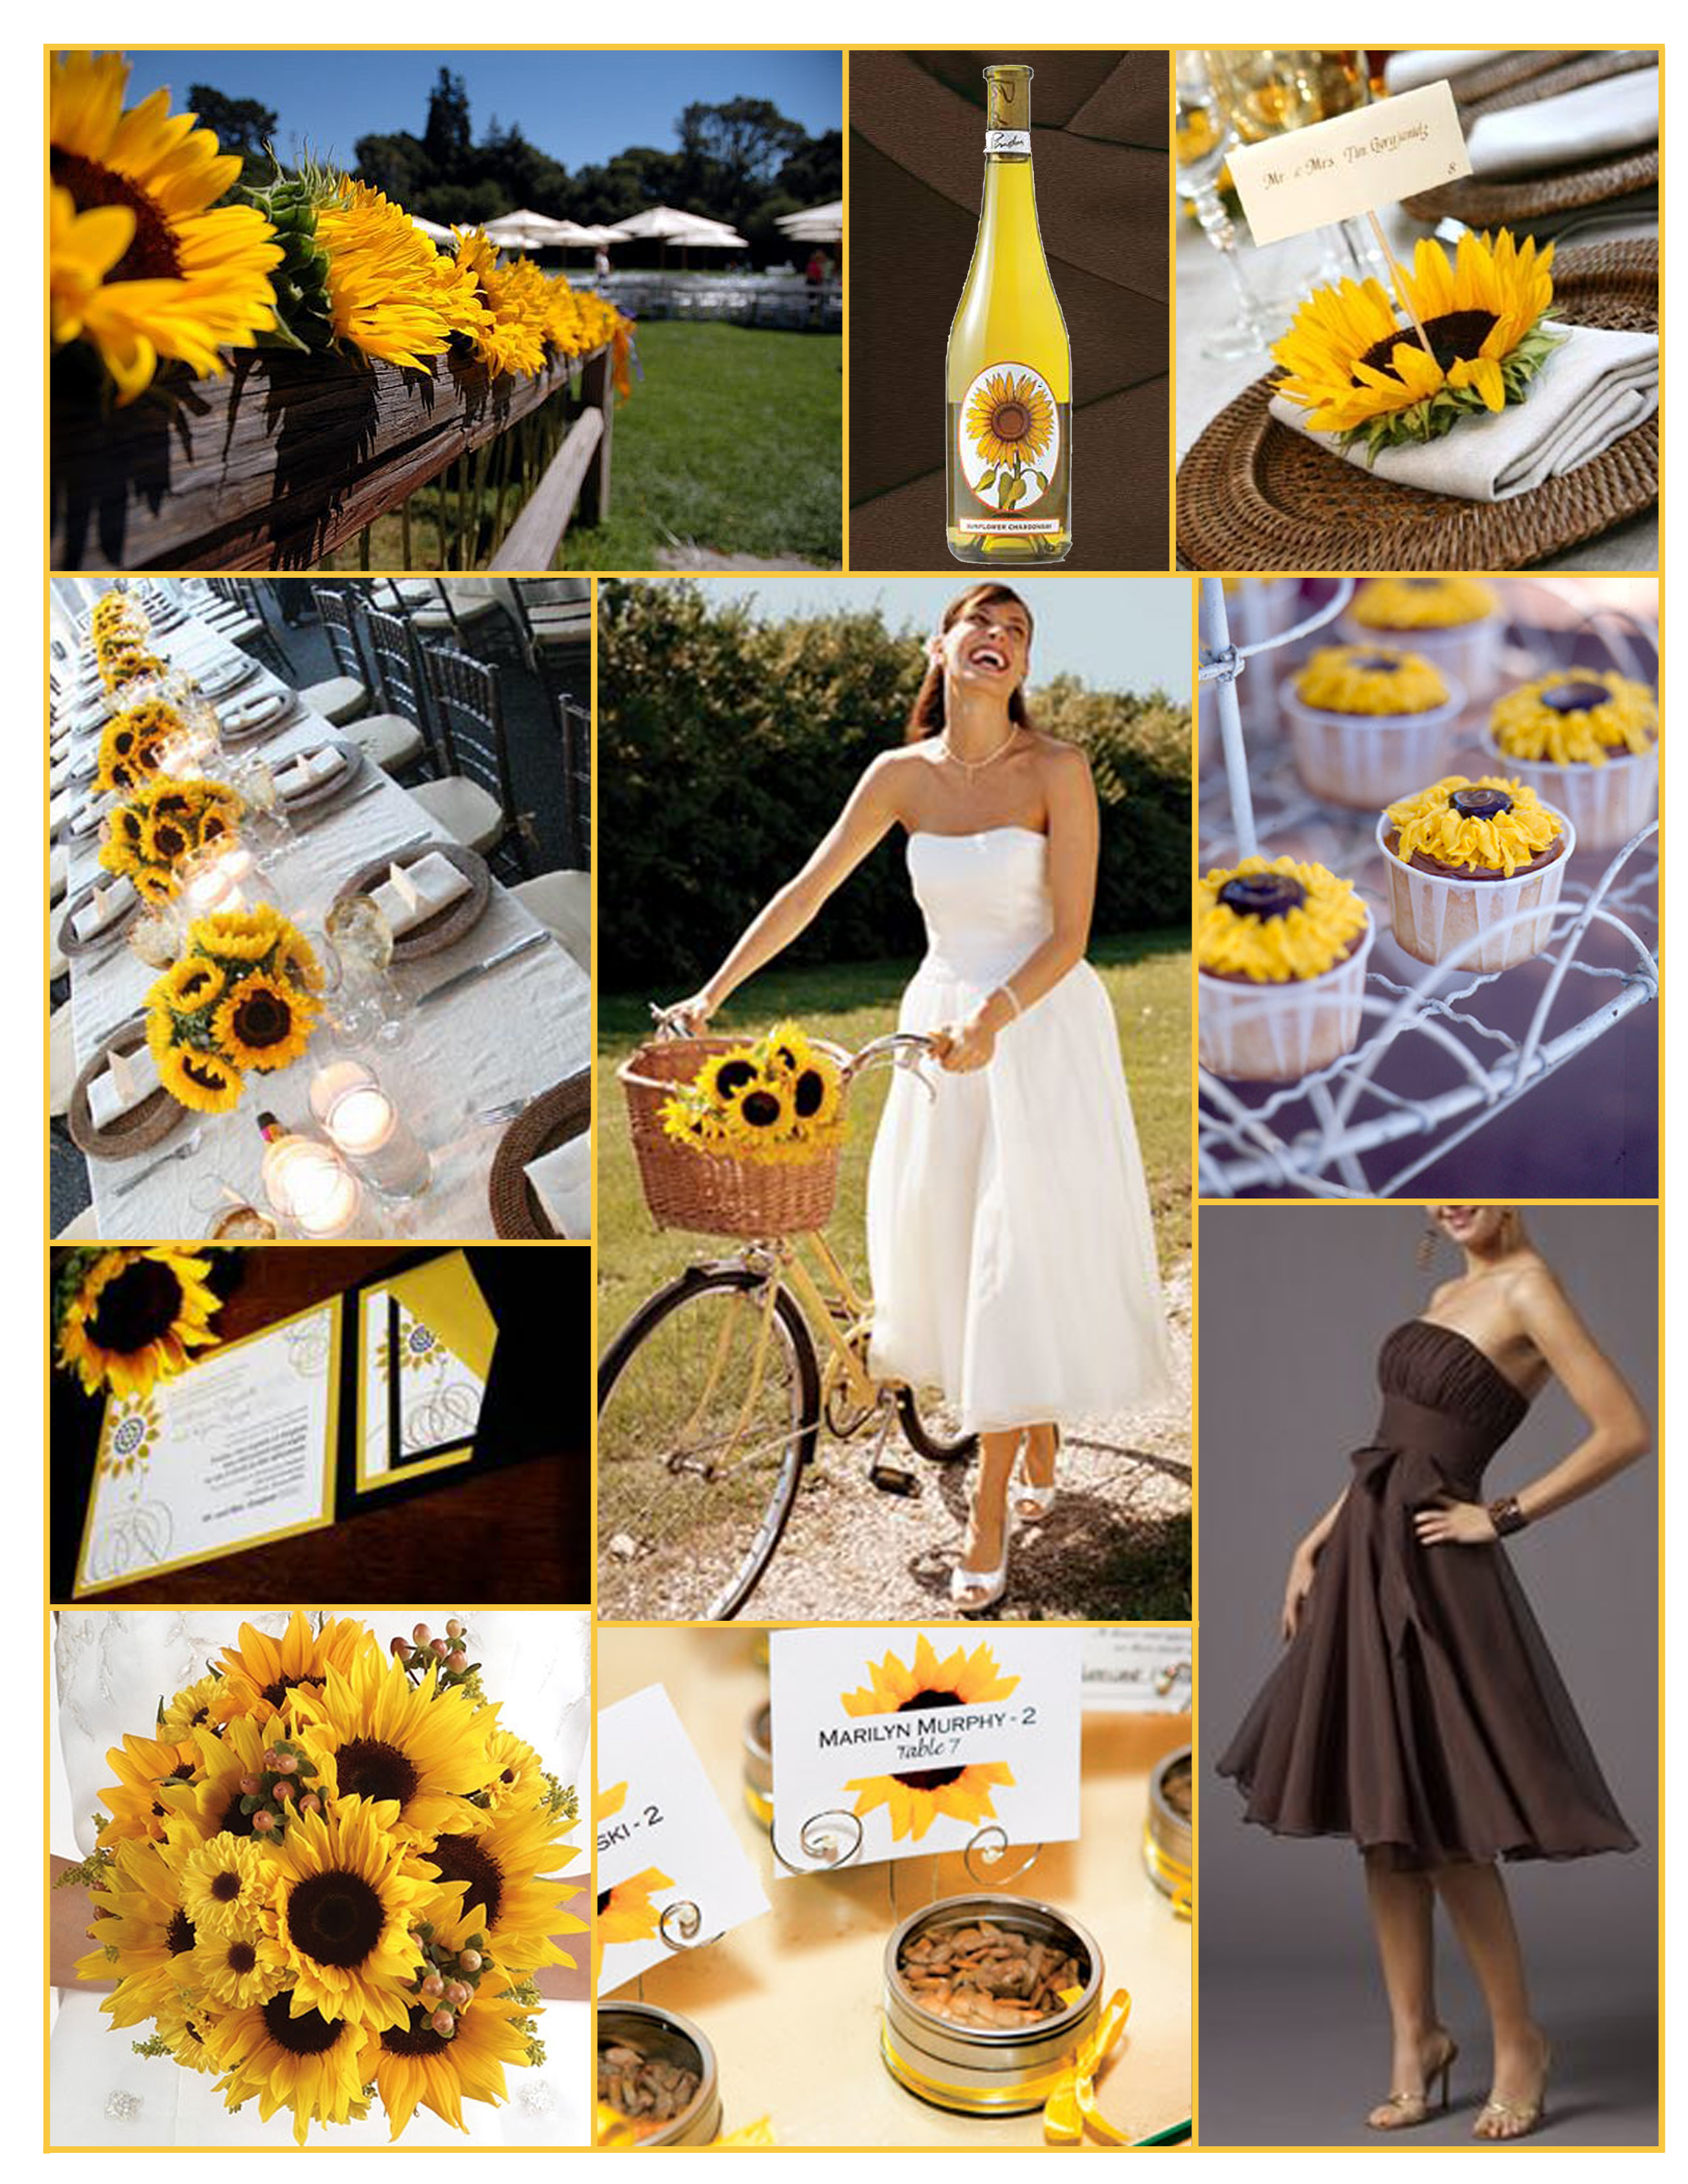 Inspiration, yellow, brown, Board, Sunflower, David's Bridal, Sunflower wedding, Mori lee, Sunflower cupcakes